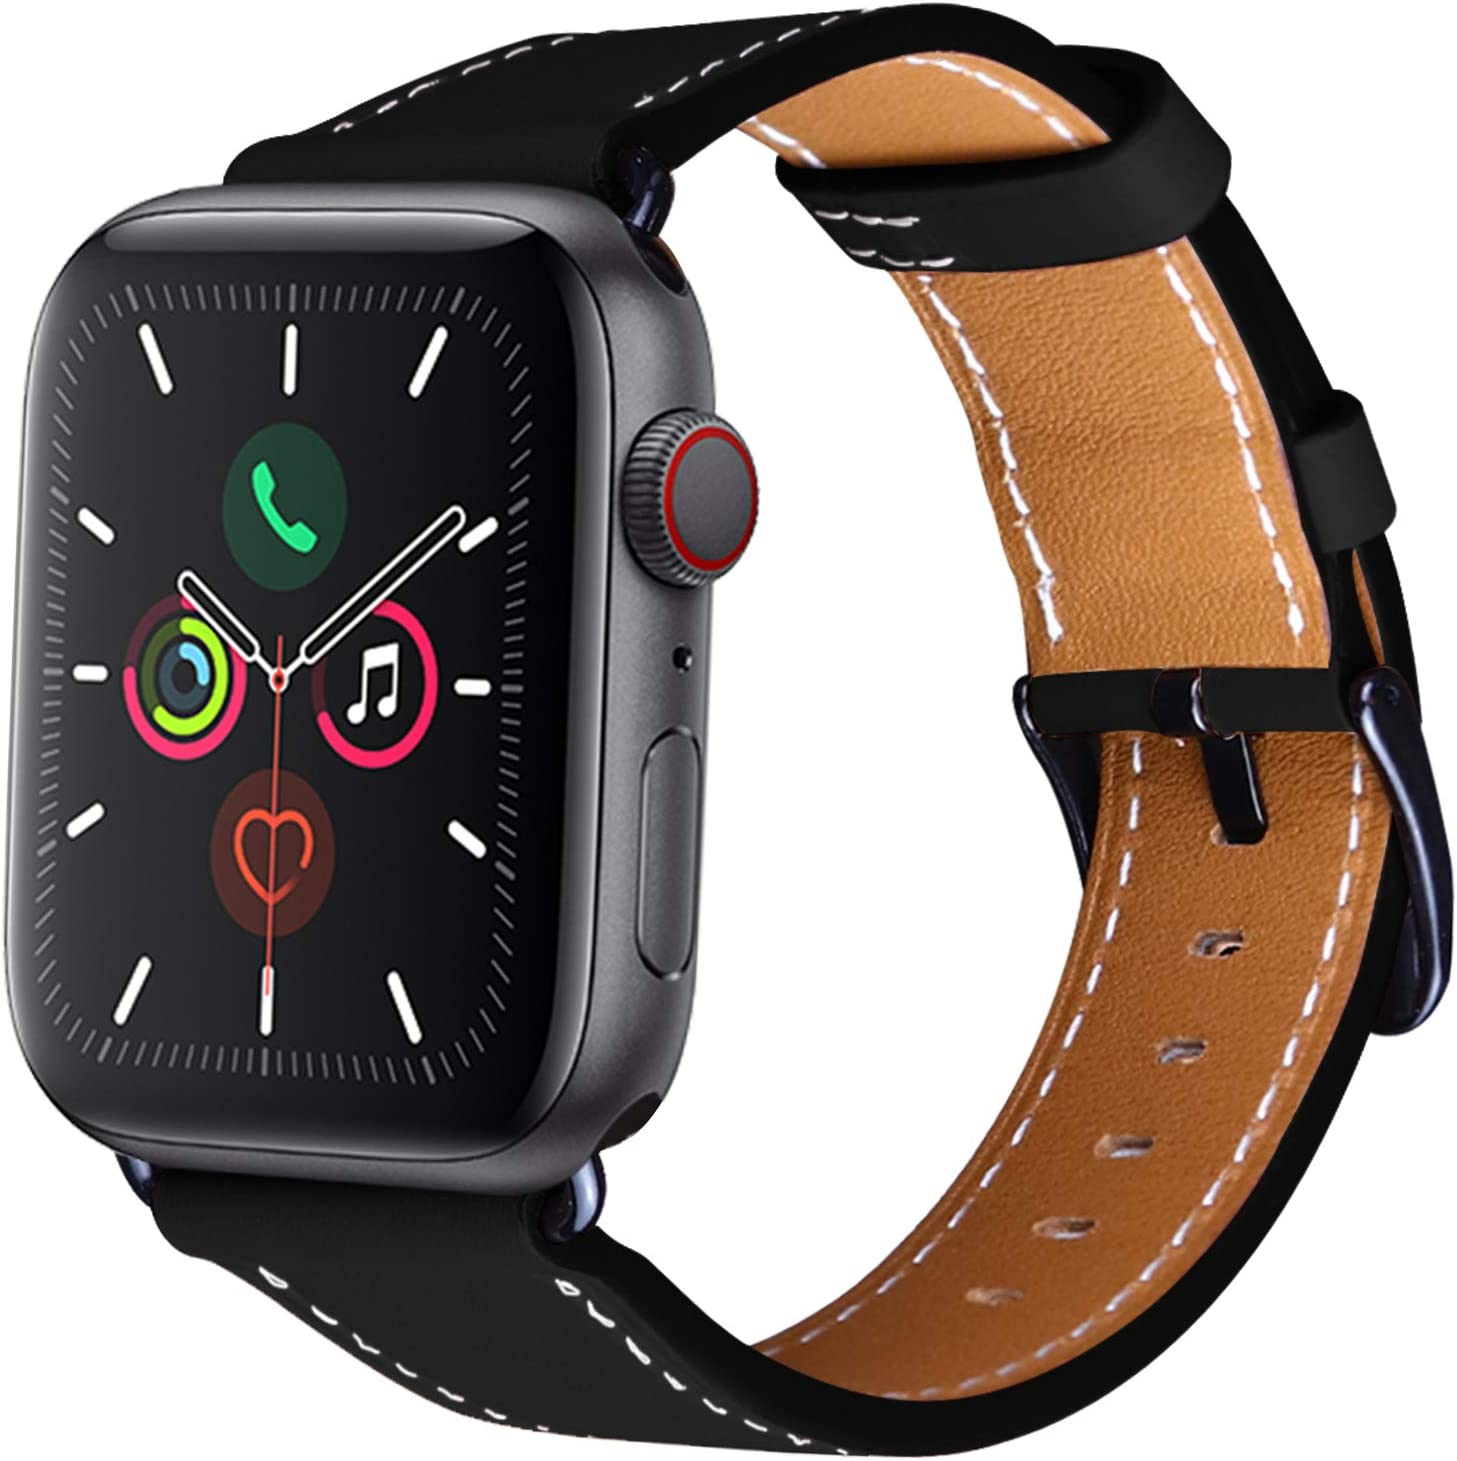 OMECKY Watch Strap Compatible with Apple Watch Leather Band Series 6/5 / 4, SE (44mm) Series 3/2 / 1 (42mm), Black